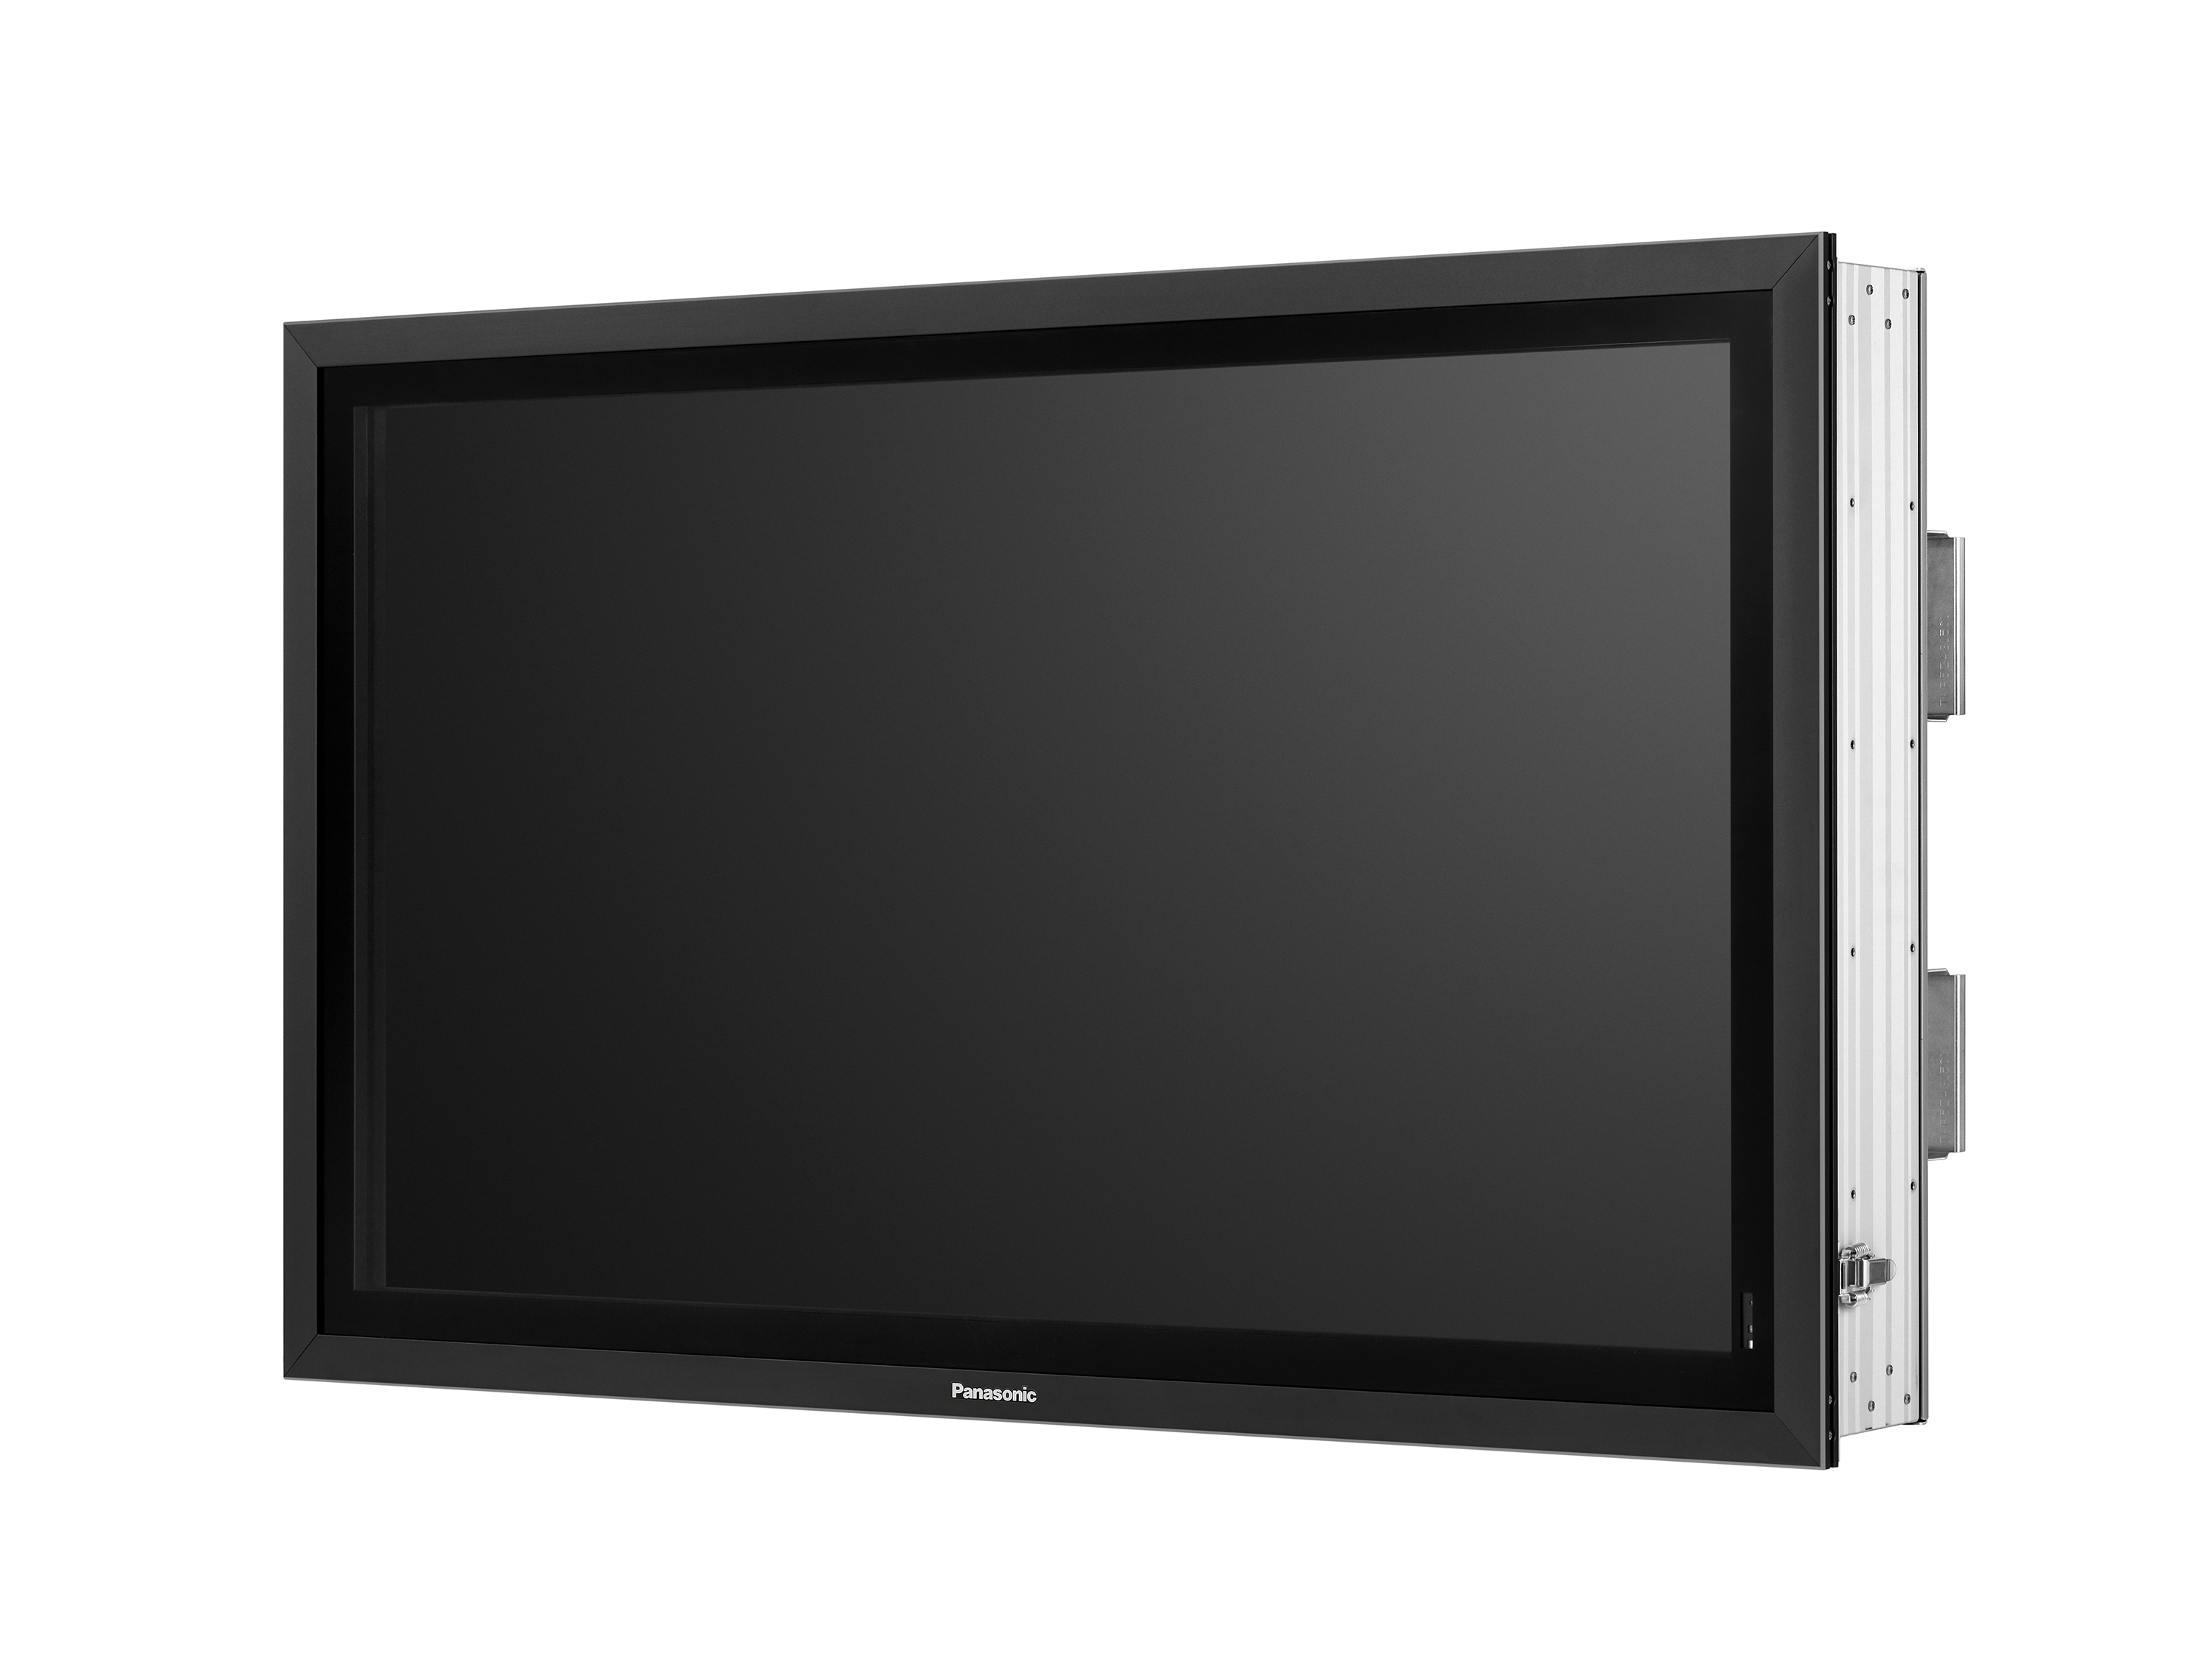 Panasonic TH-47LFX6N Tough LCD Display